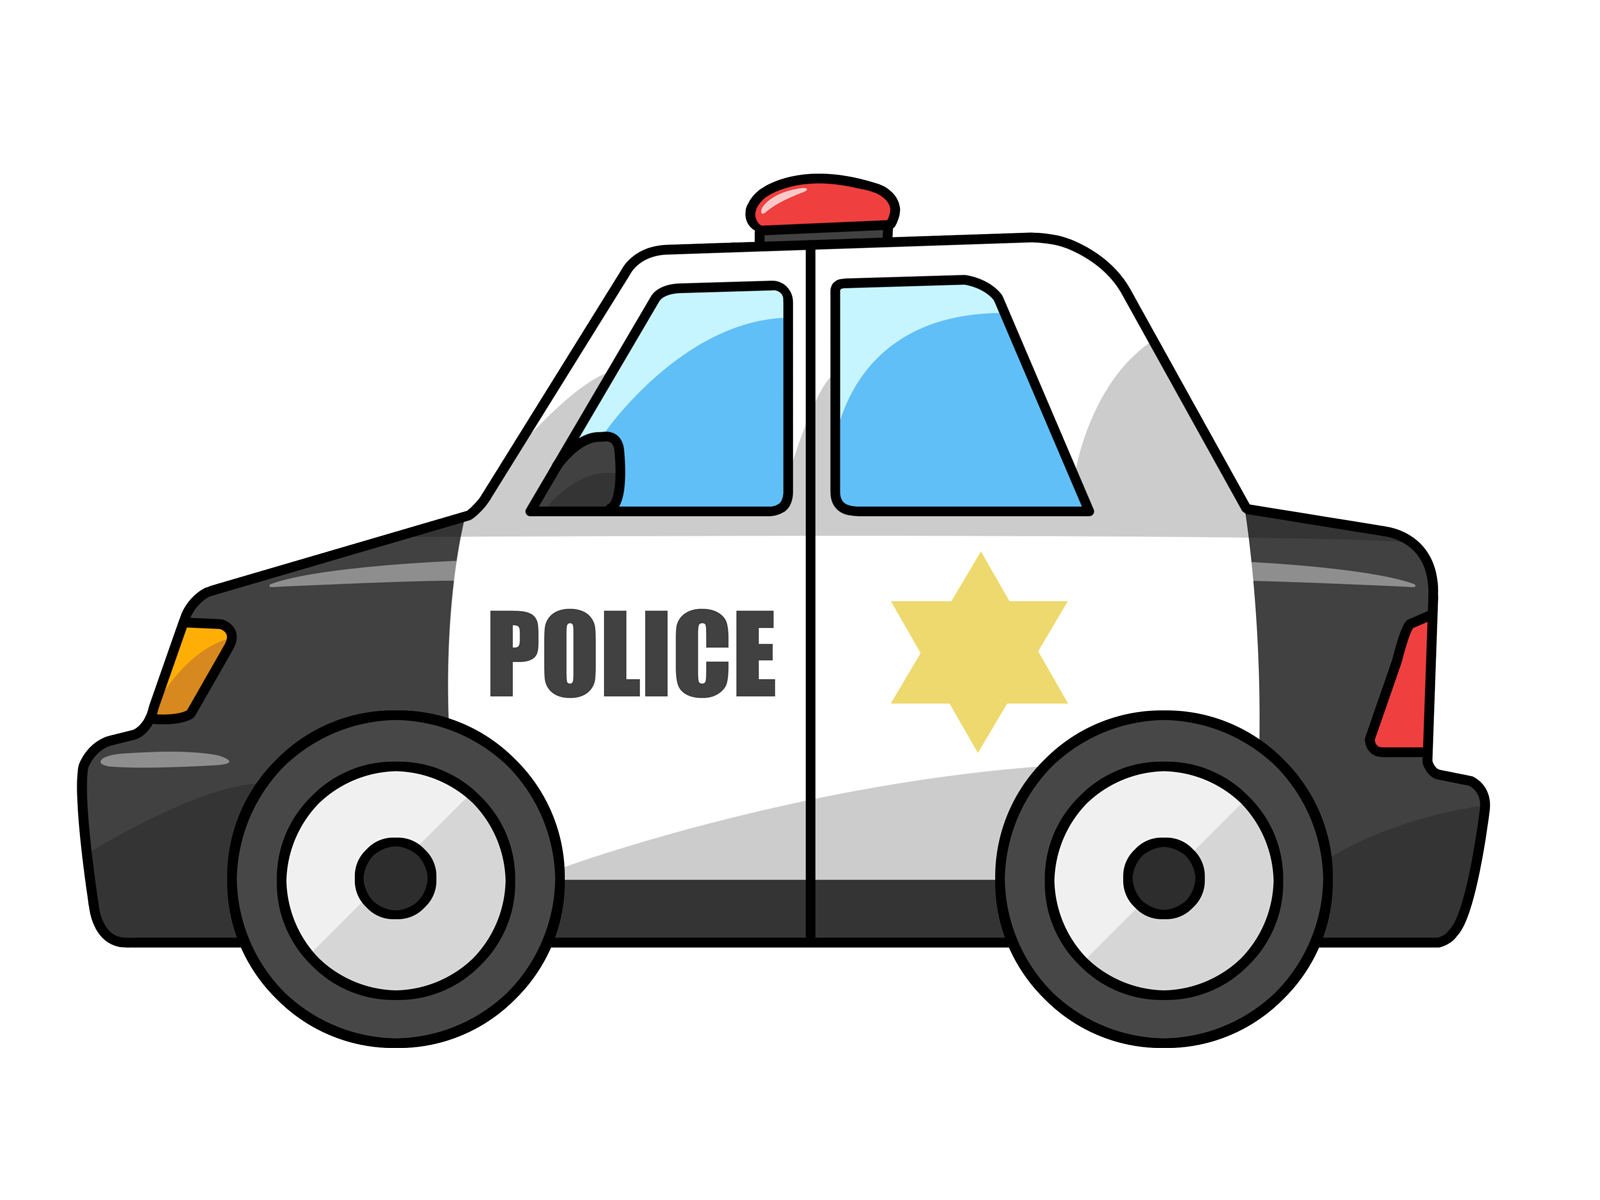 Police car kids clipart clipart black and white library Free to Use & Public Domain Police Car Clip Art - ClipArt Best ... clipart black and white library